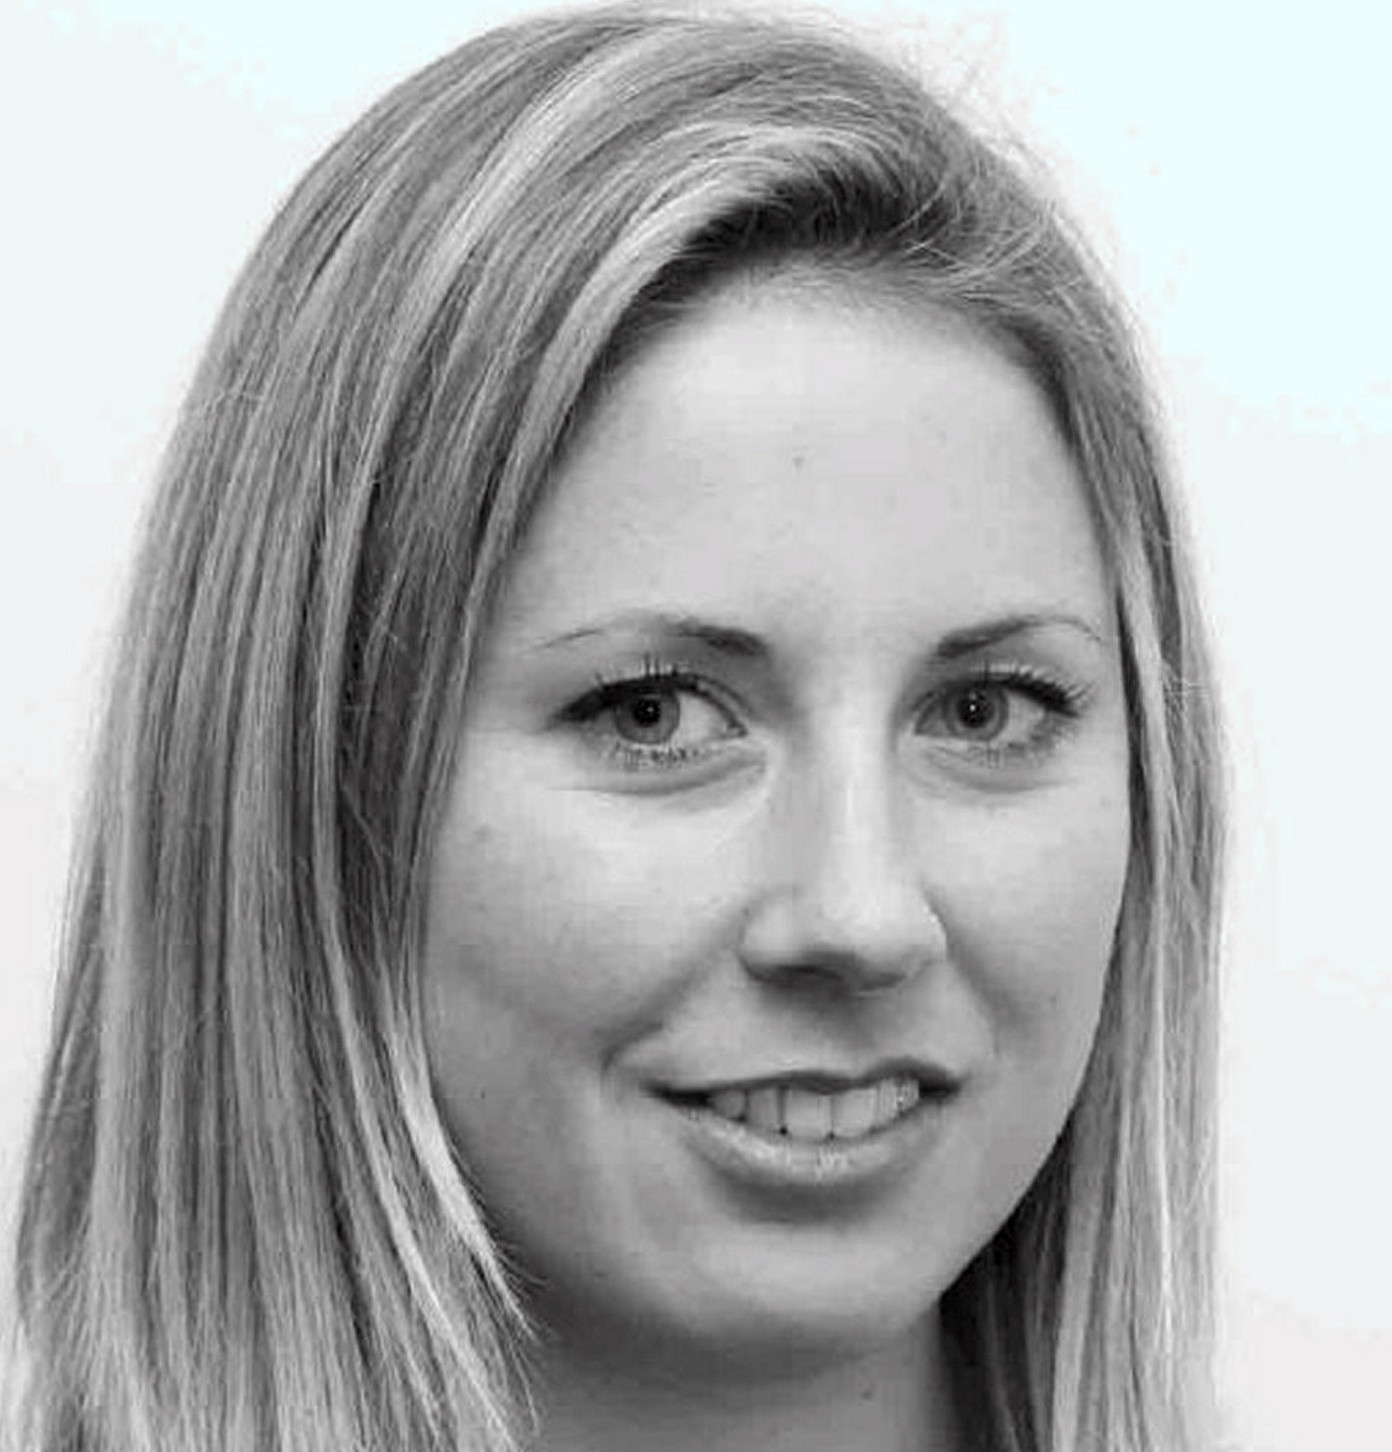 Young lawyer Orla Lawlor died in a cycling accident